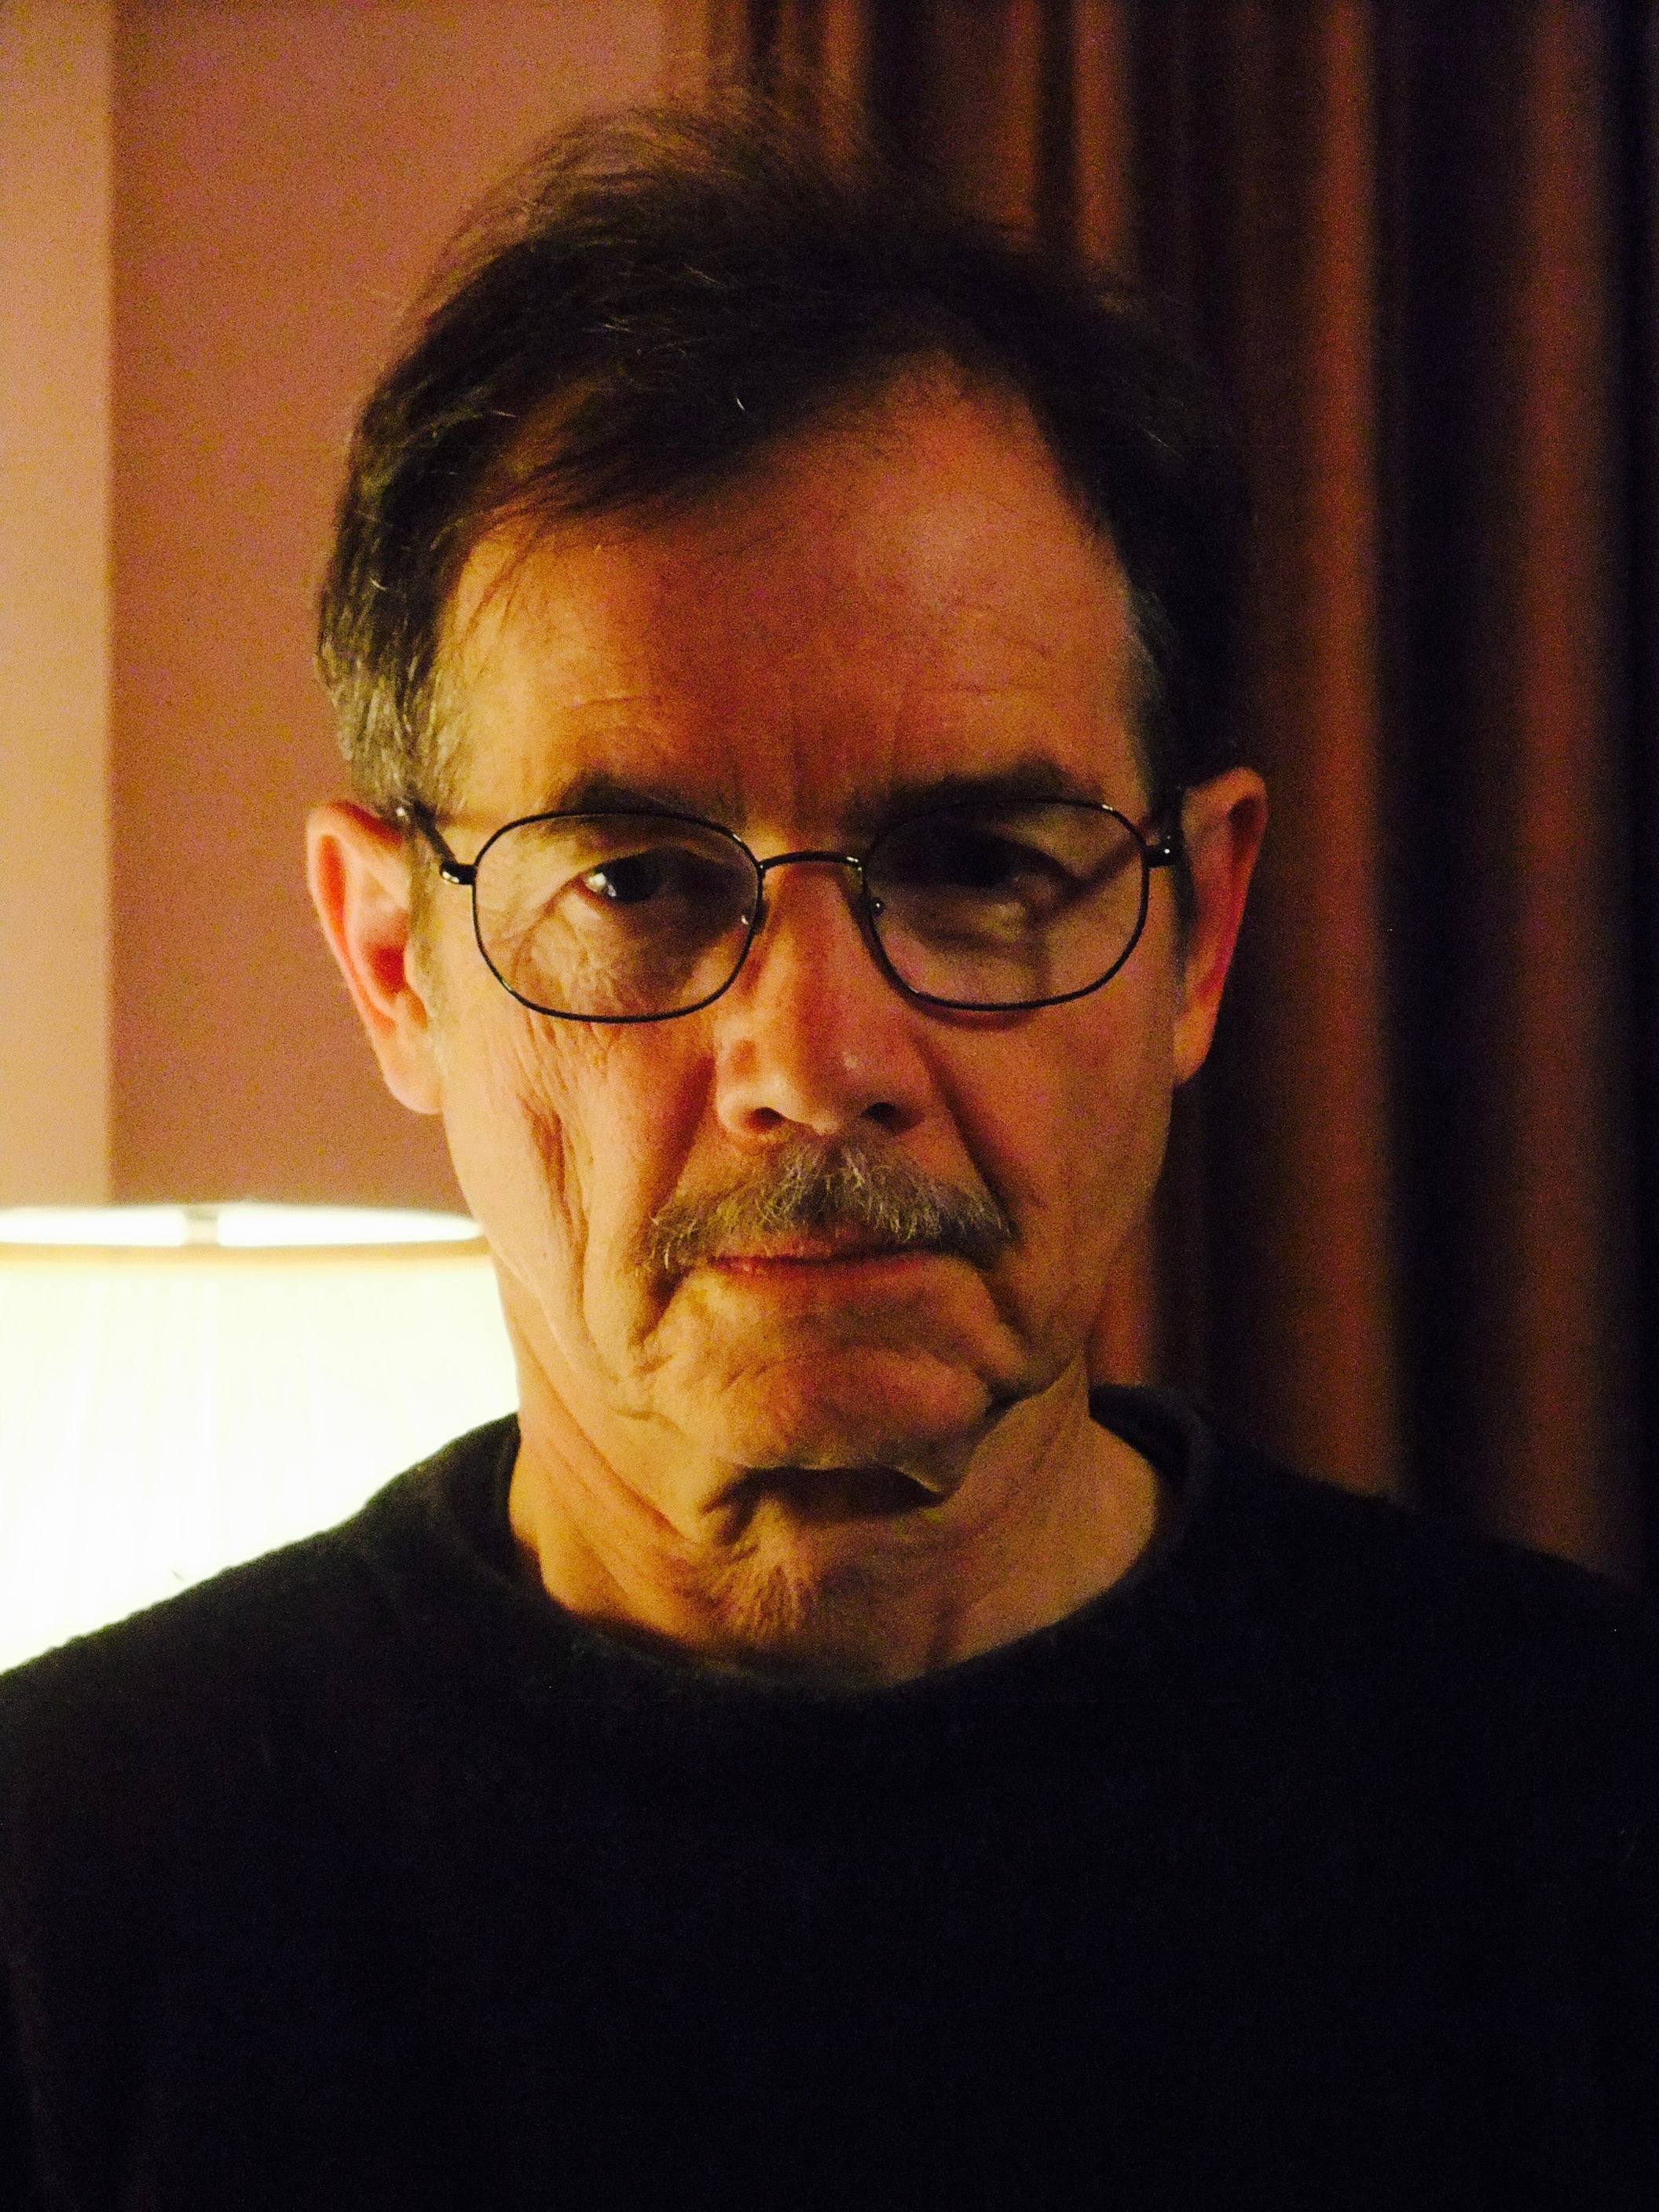 """Christopher Adamson is a sociologist and a fiction writer. He is the author of a novella, The Road to Jewel Beach (Exile Editions, 2004). His short stories appear in Ontario Review, Exile Literary Quarterly and Hart House Review. His poem """" Ode on a Styrofoam Cup""""  appeared in the Fall 2017 issue of the Intima."""